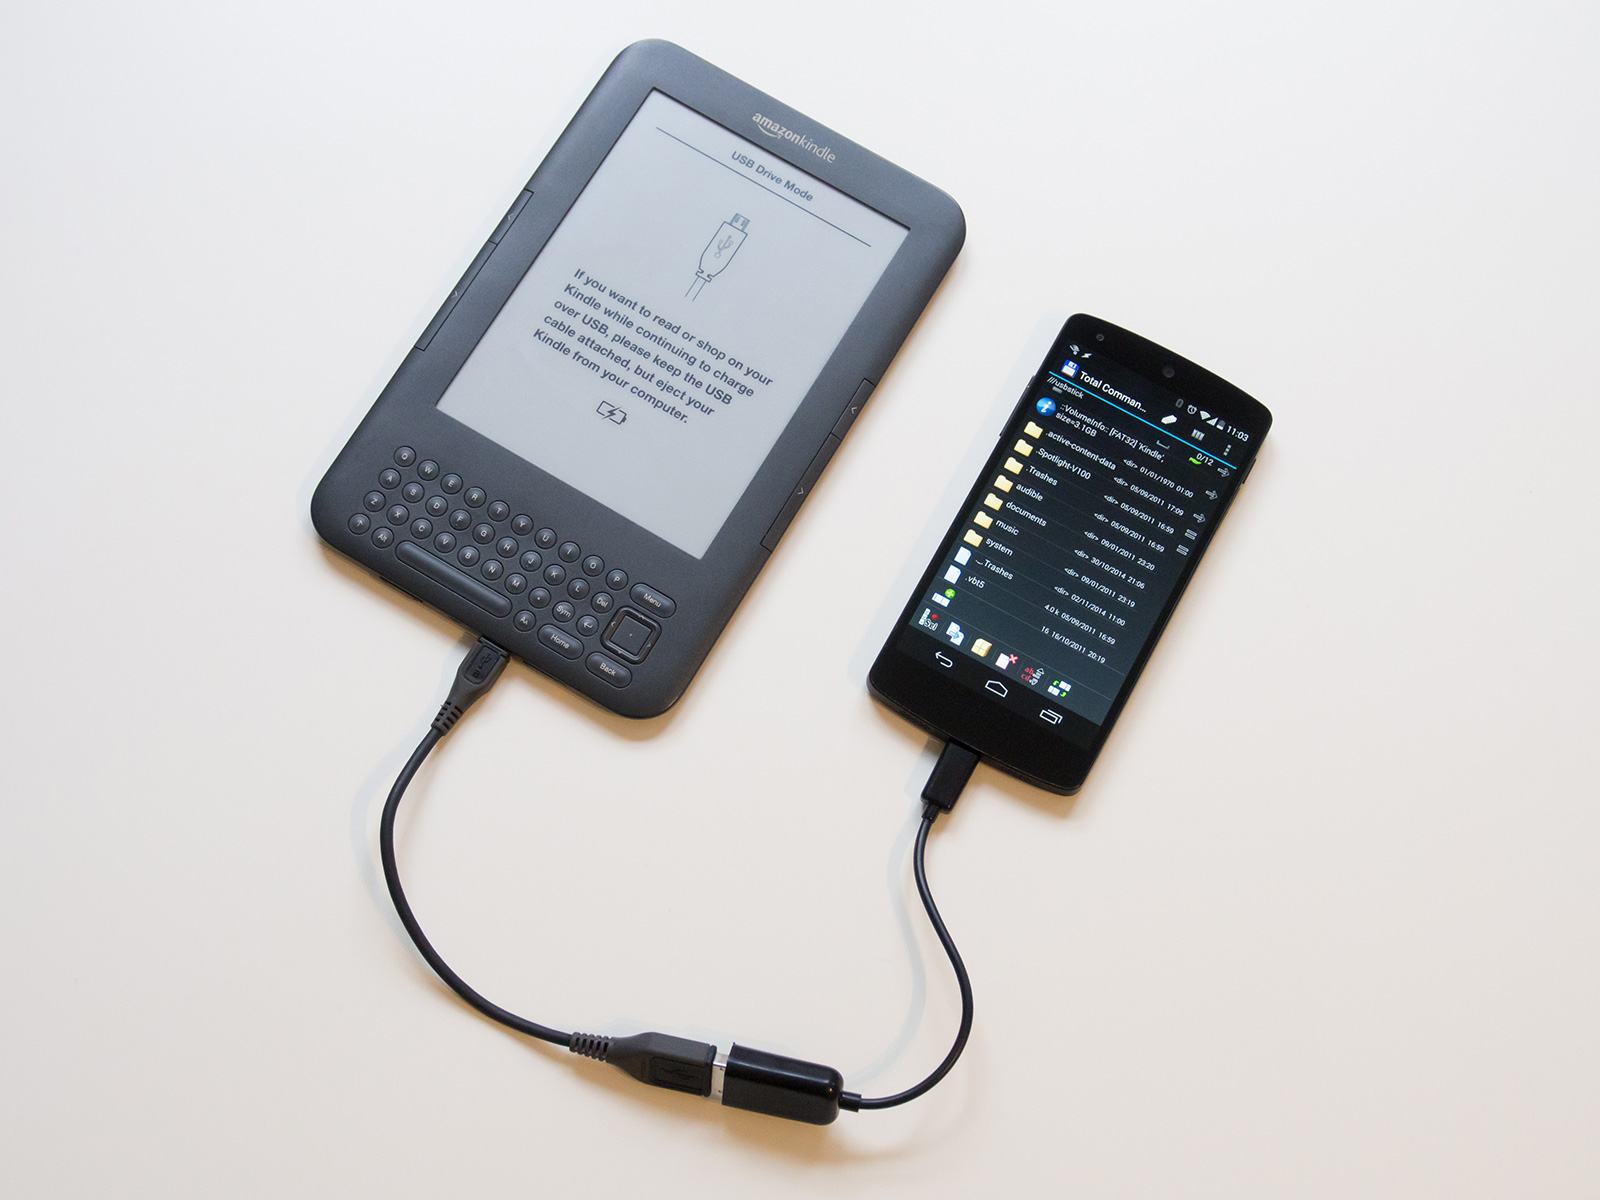 Kindle plugged into the Nexus 5 with a USB OTG cable